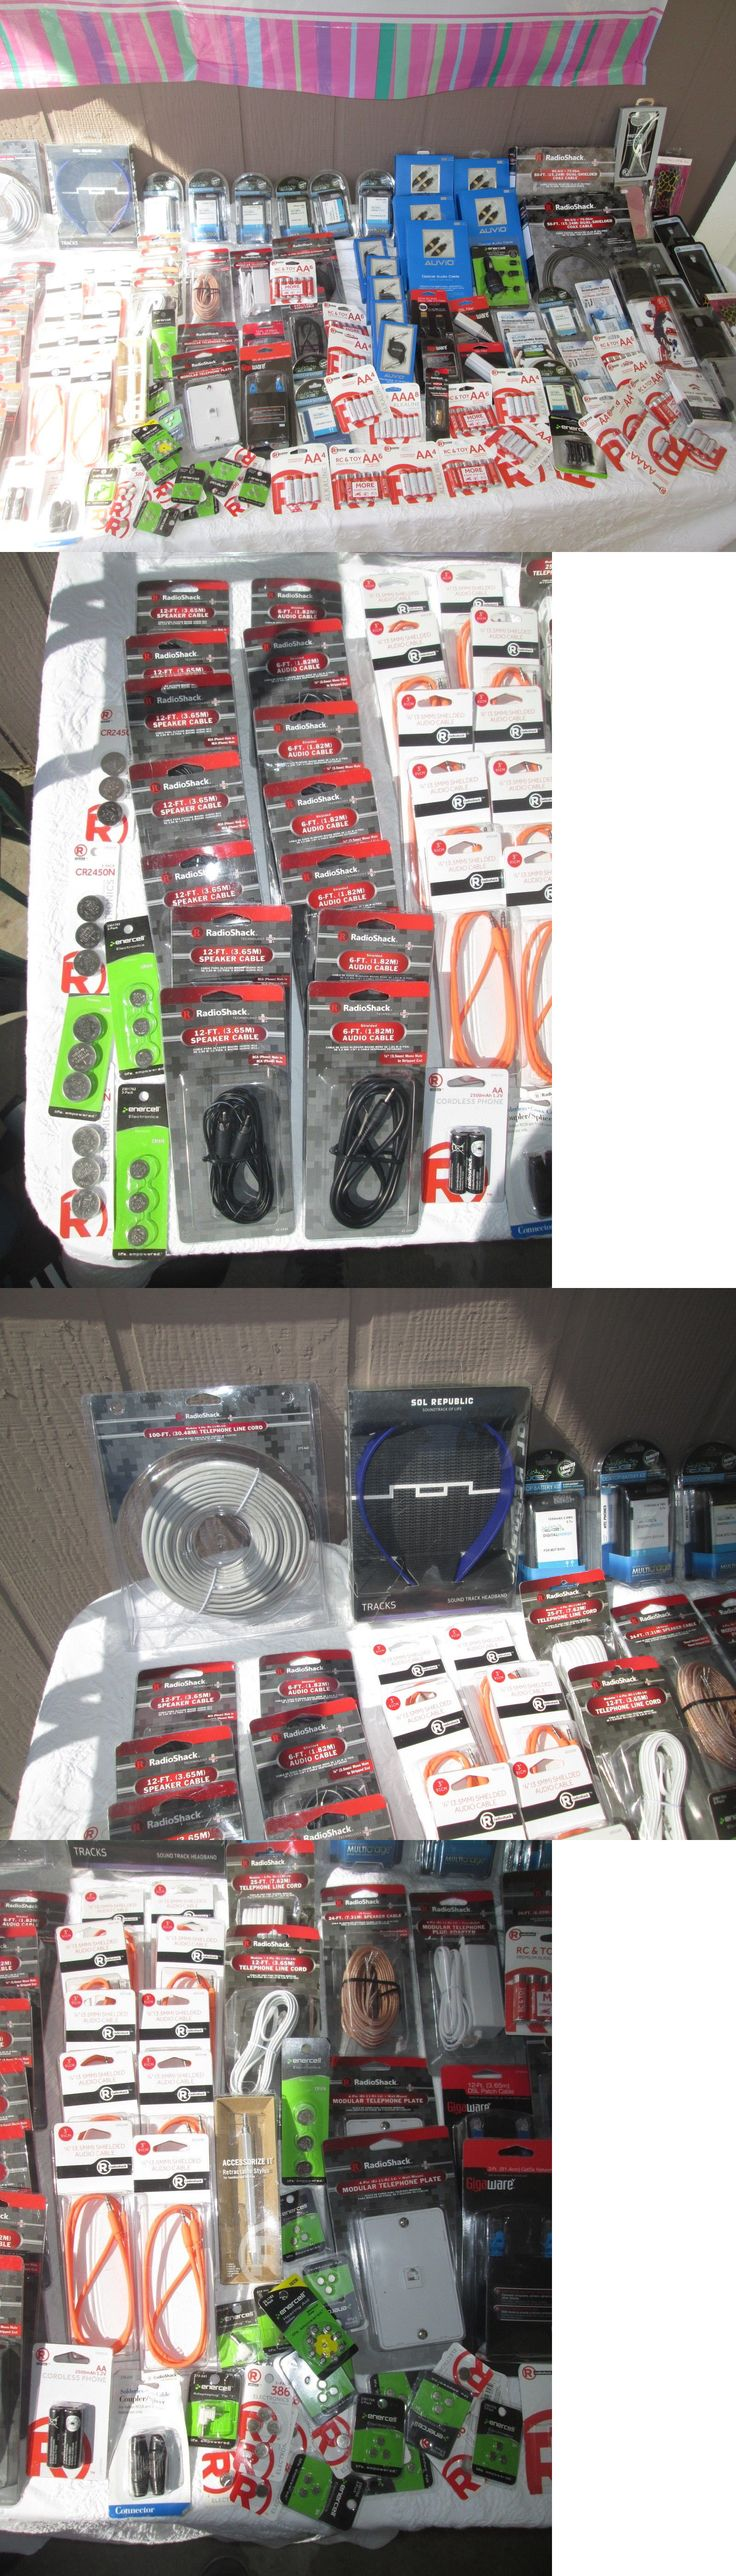 Other Consumer Electronic Lots: Wholesale Lot Of Radio Shack Merchandise 140 Pcs. For Retail New Jp 04 -> BUY IT NOW ONLY: $110.0 on eBay!